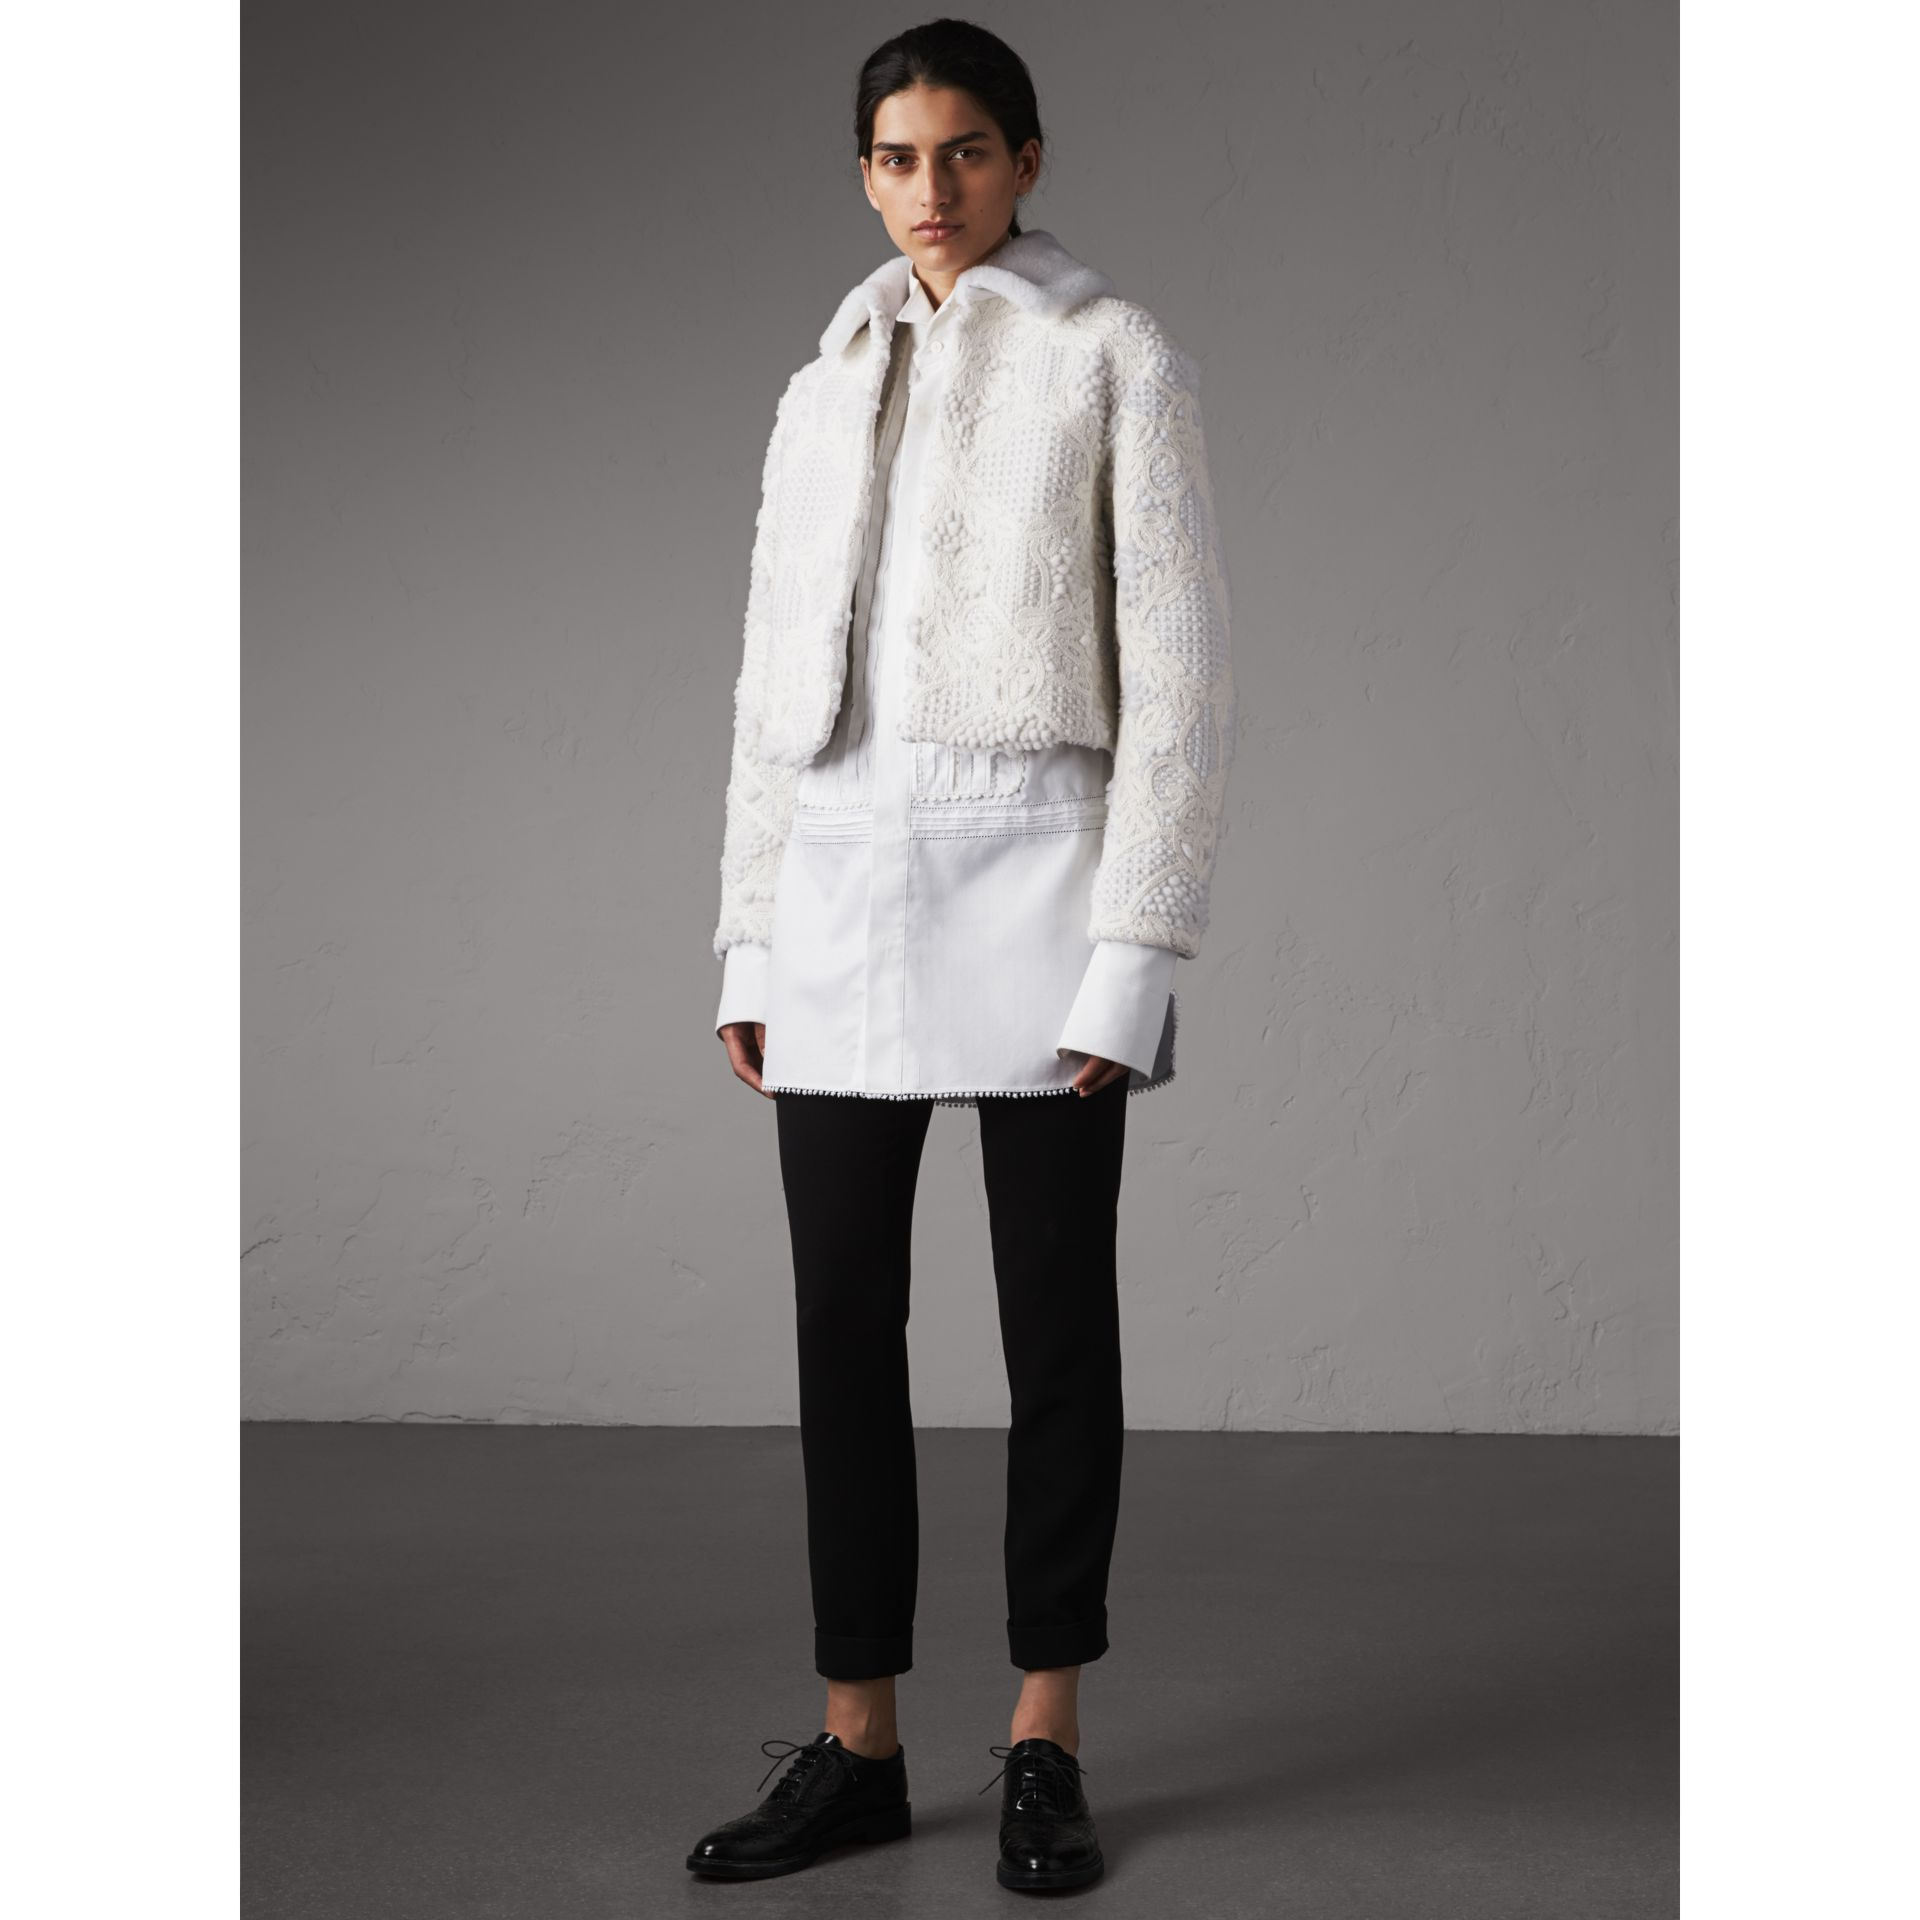 Macramé Lace-embellished Shearling Jacket in White - Women | Burberry Australia - gallery image 5